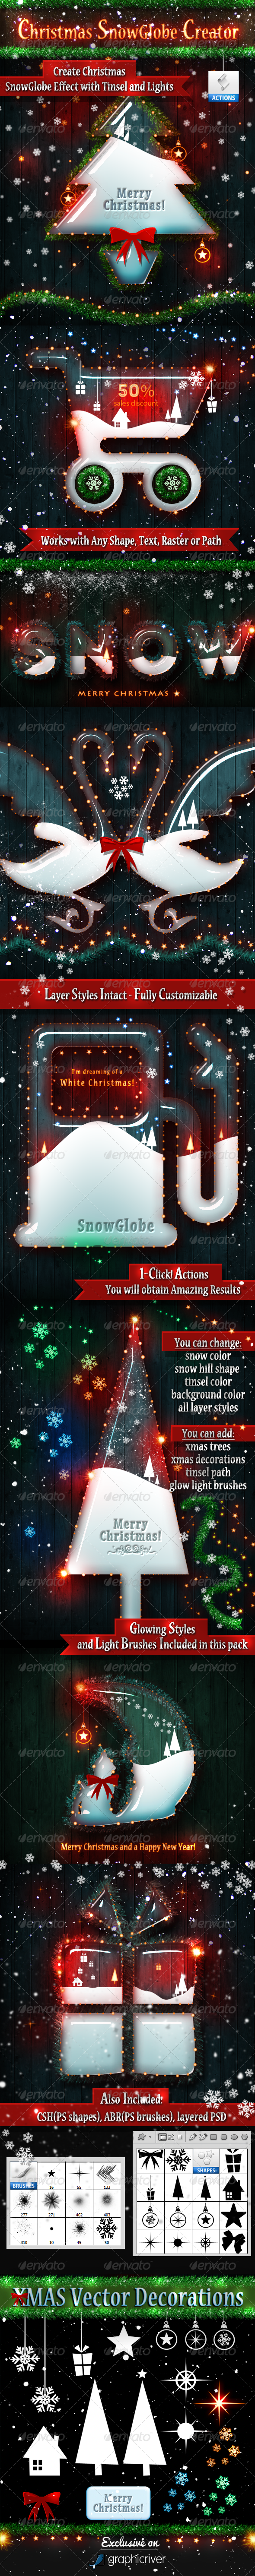 Christmas Snow Globe Photoshop Creator - Utilities Actions